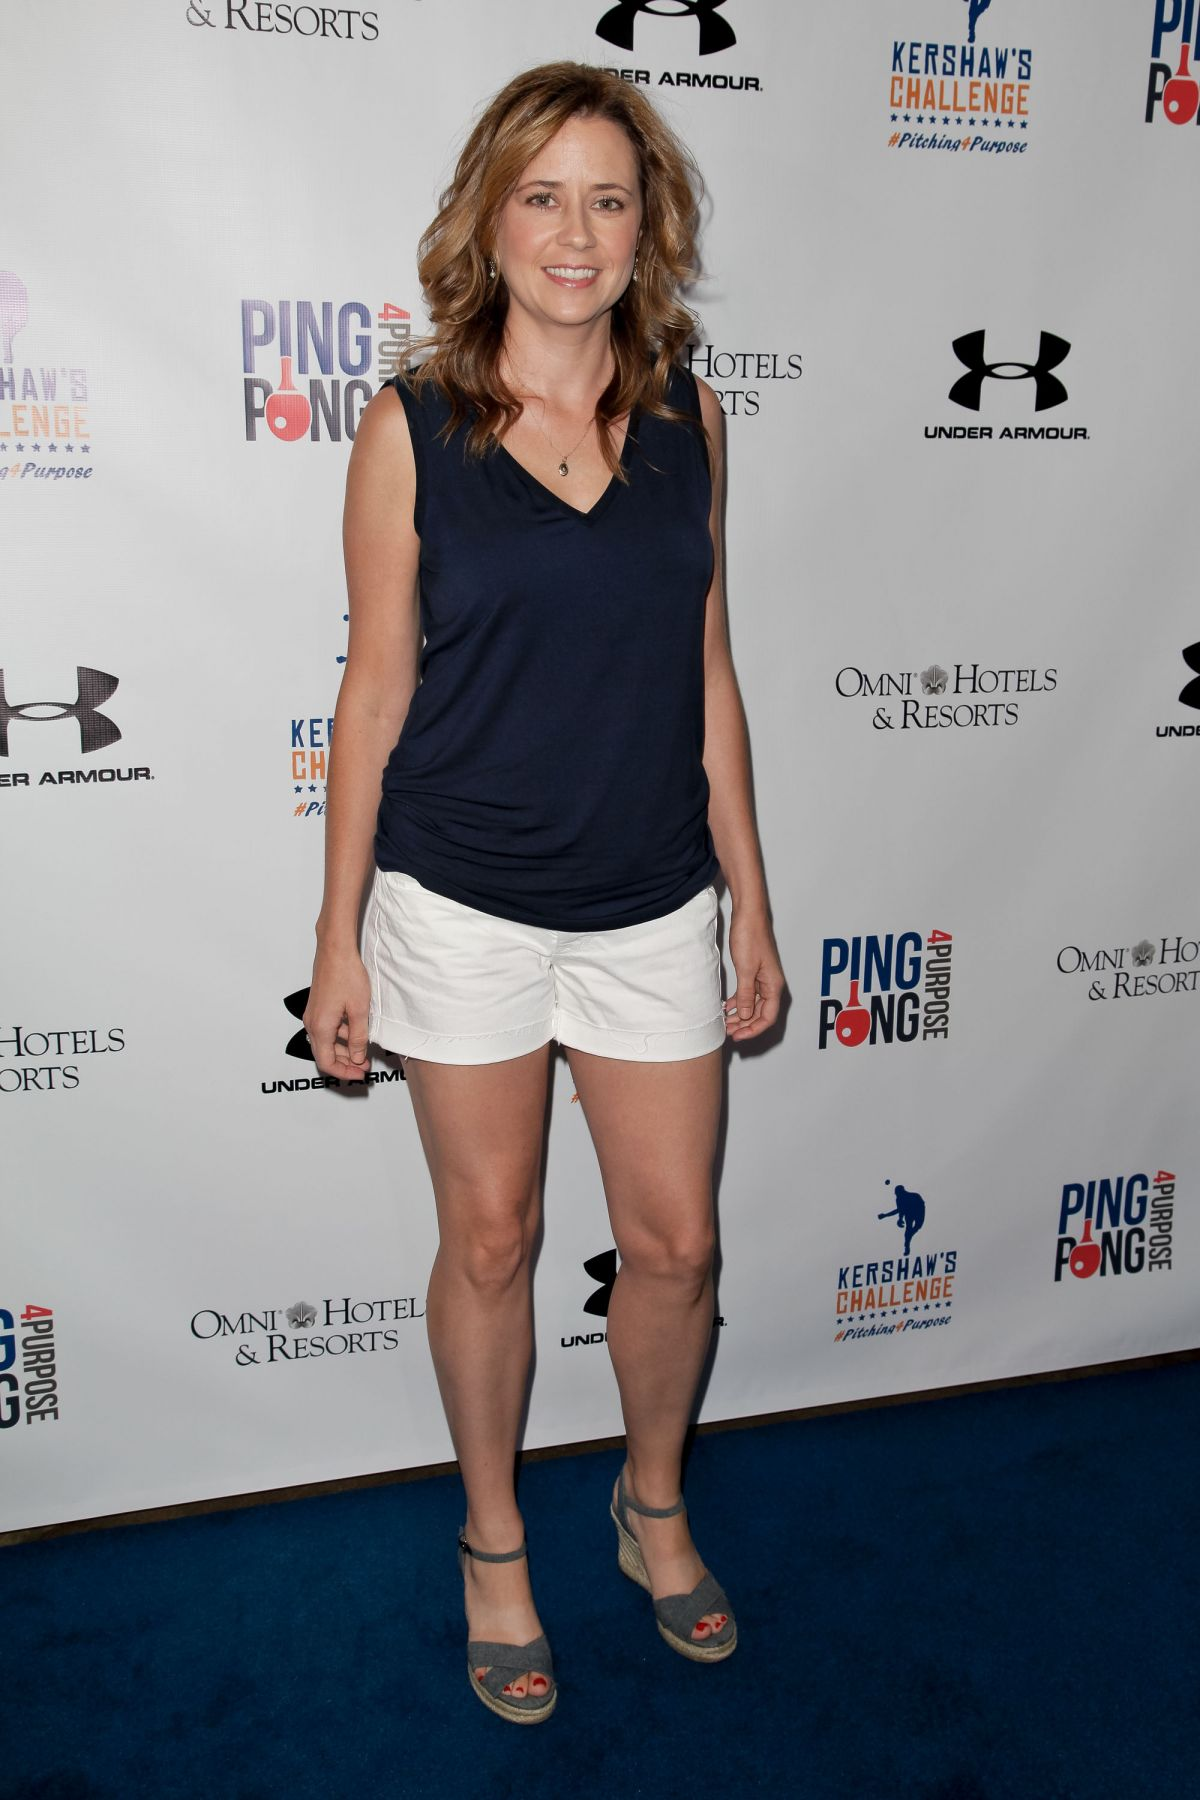 725642f184f5c Jenna Fischer At Inaugural Ping Pong 4 Purpose Charity Event In LA ...